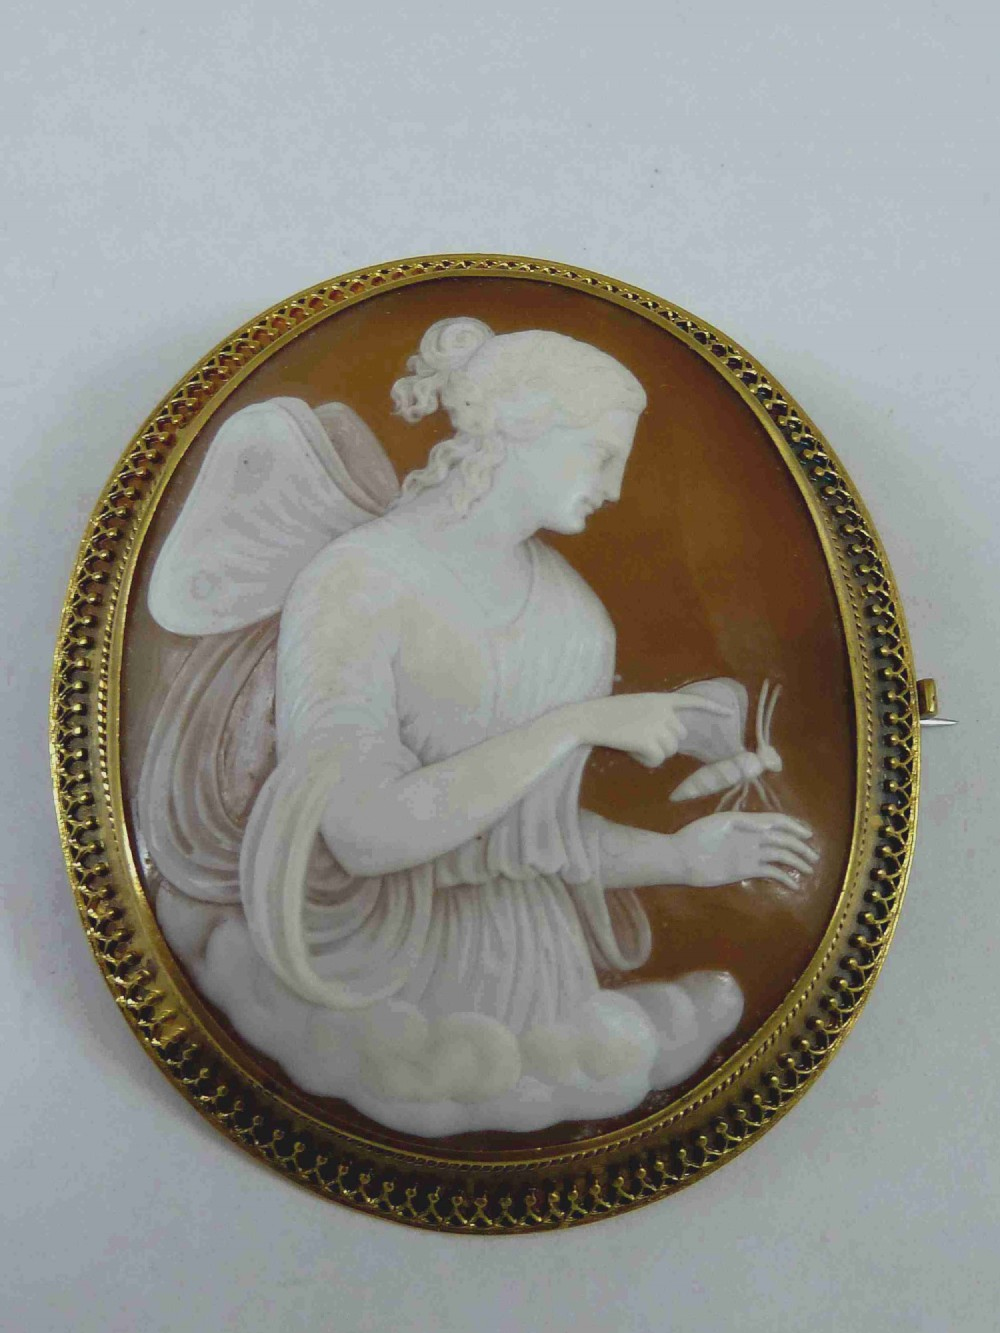 classical winged lady psyche cameo brooch pin gold frame carved shell italian